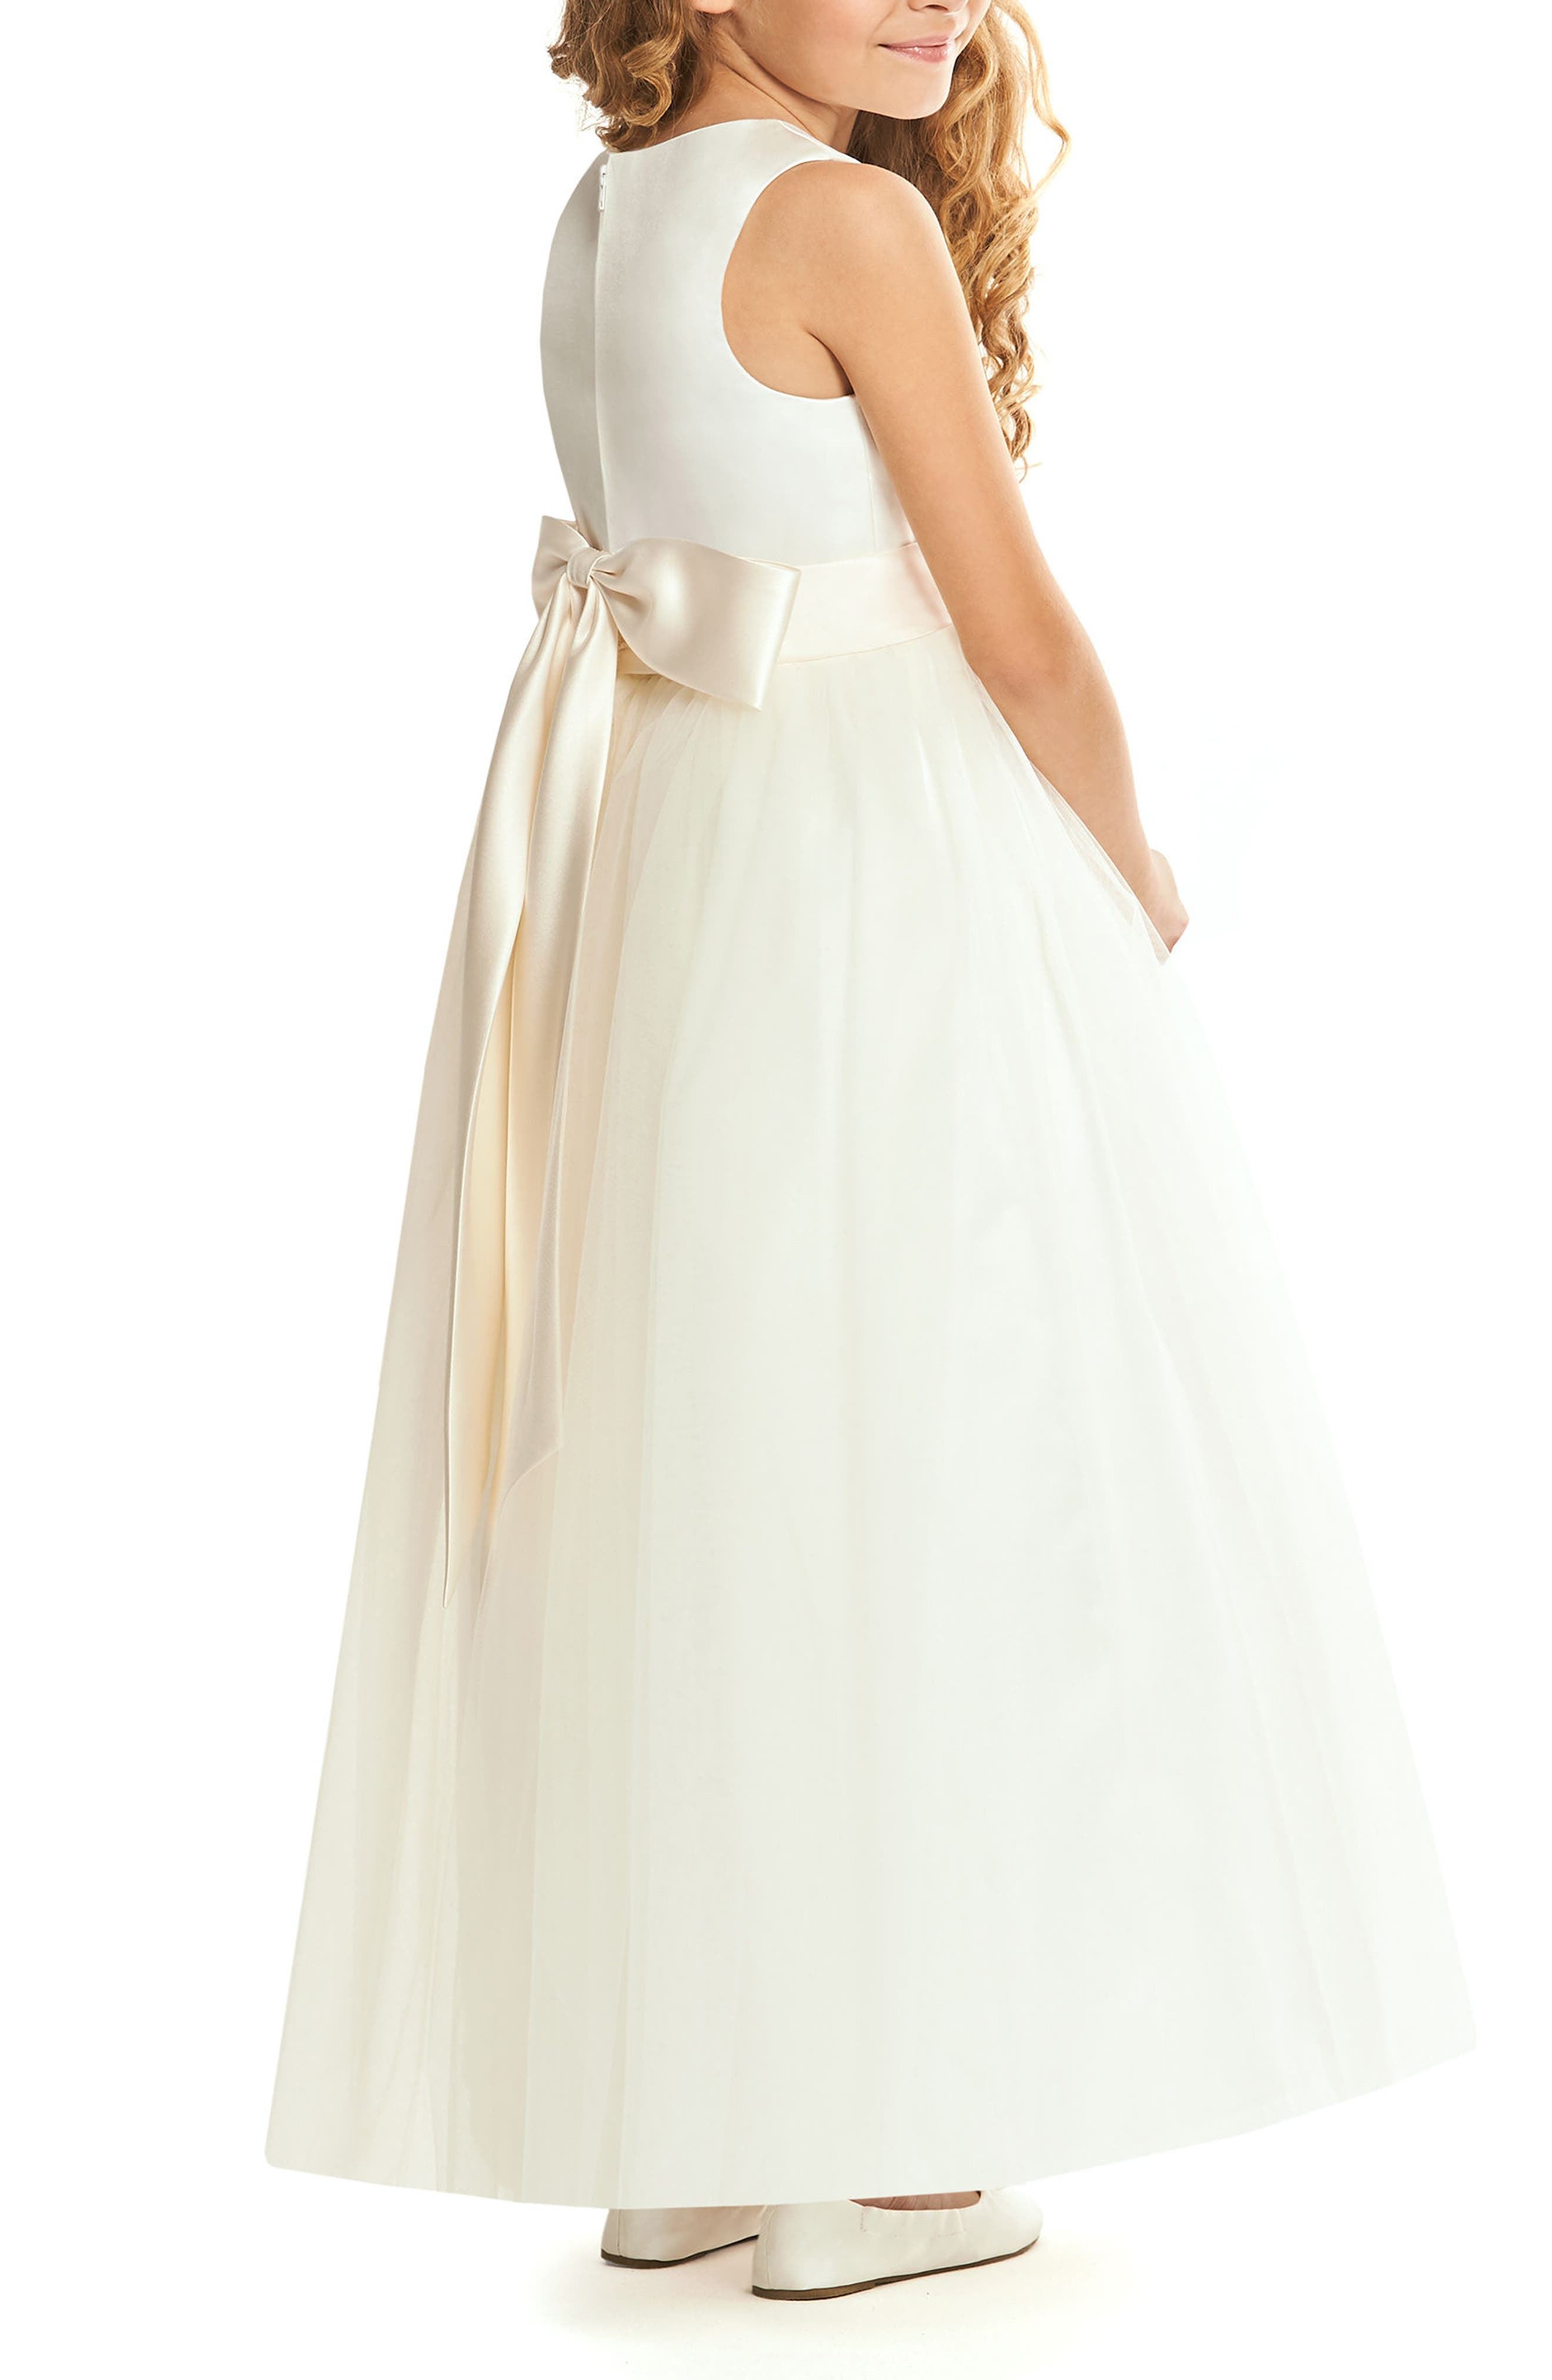 Satin & Tulle Flower Girl Dress,                             Alternate thumbnail 2, color,                             900